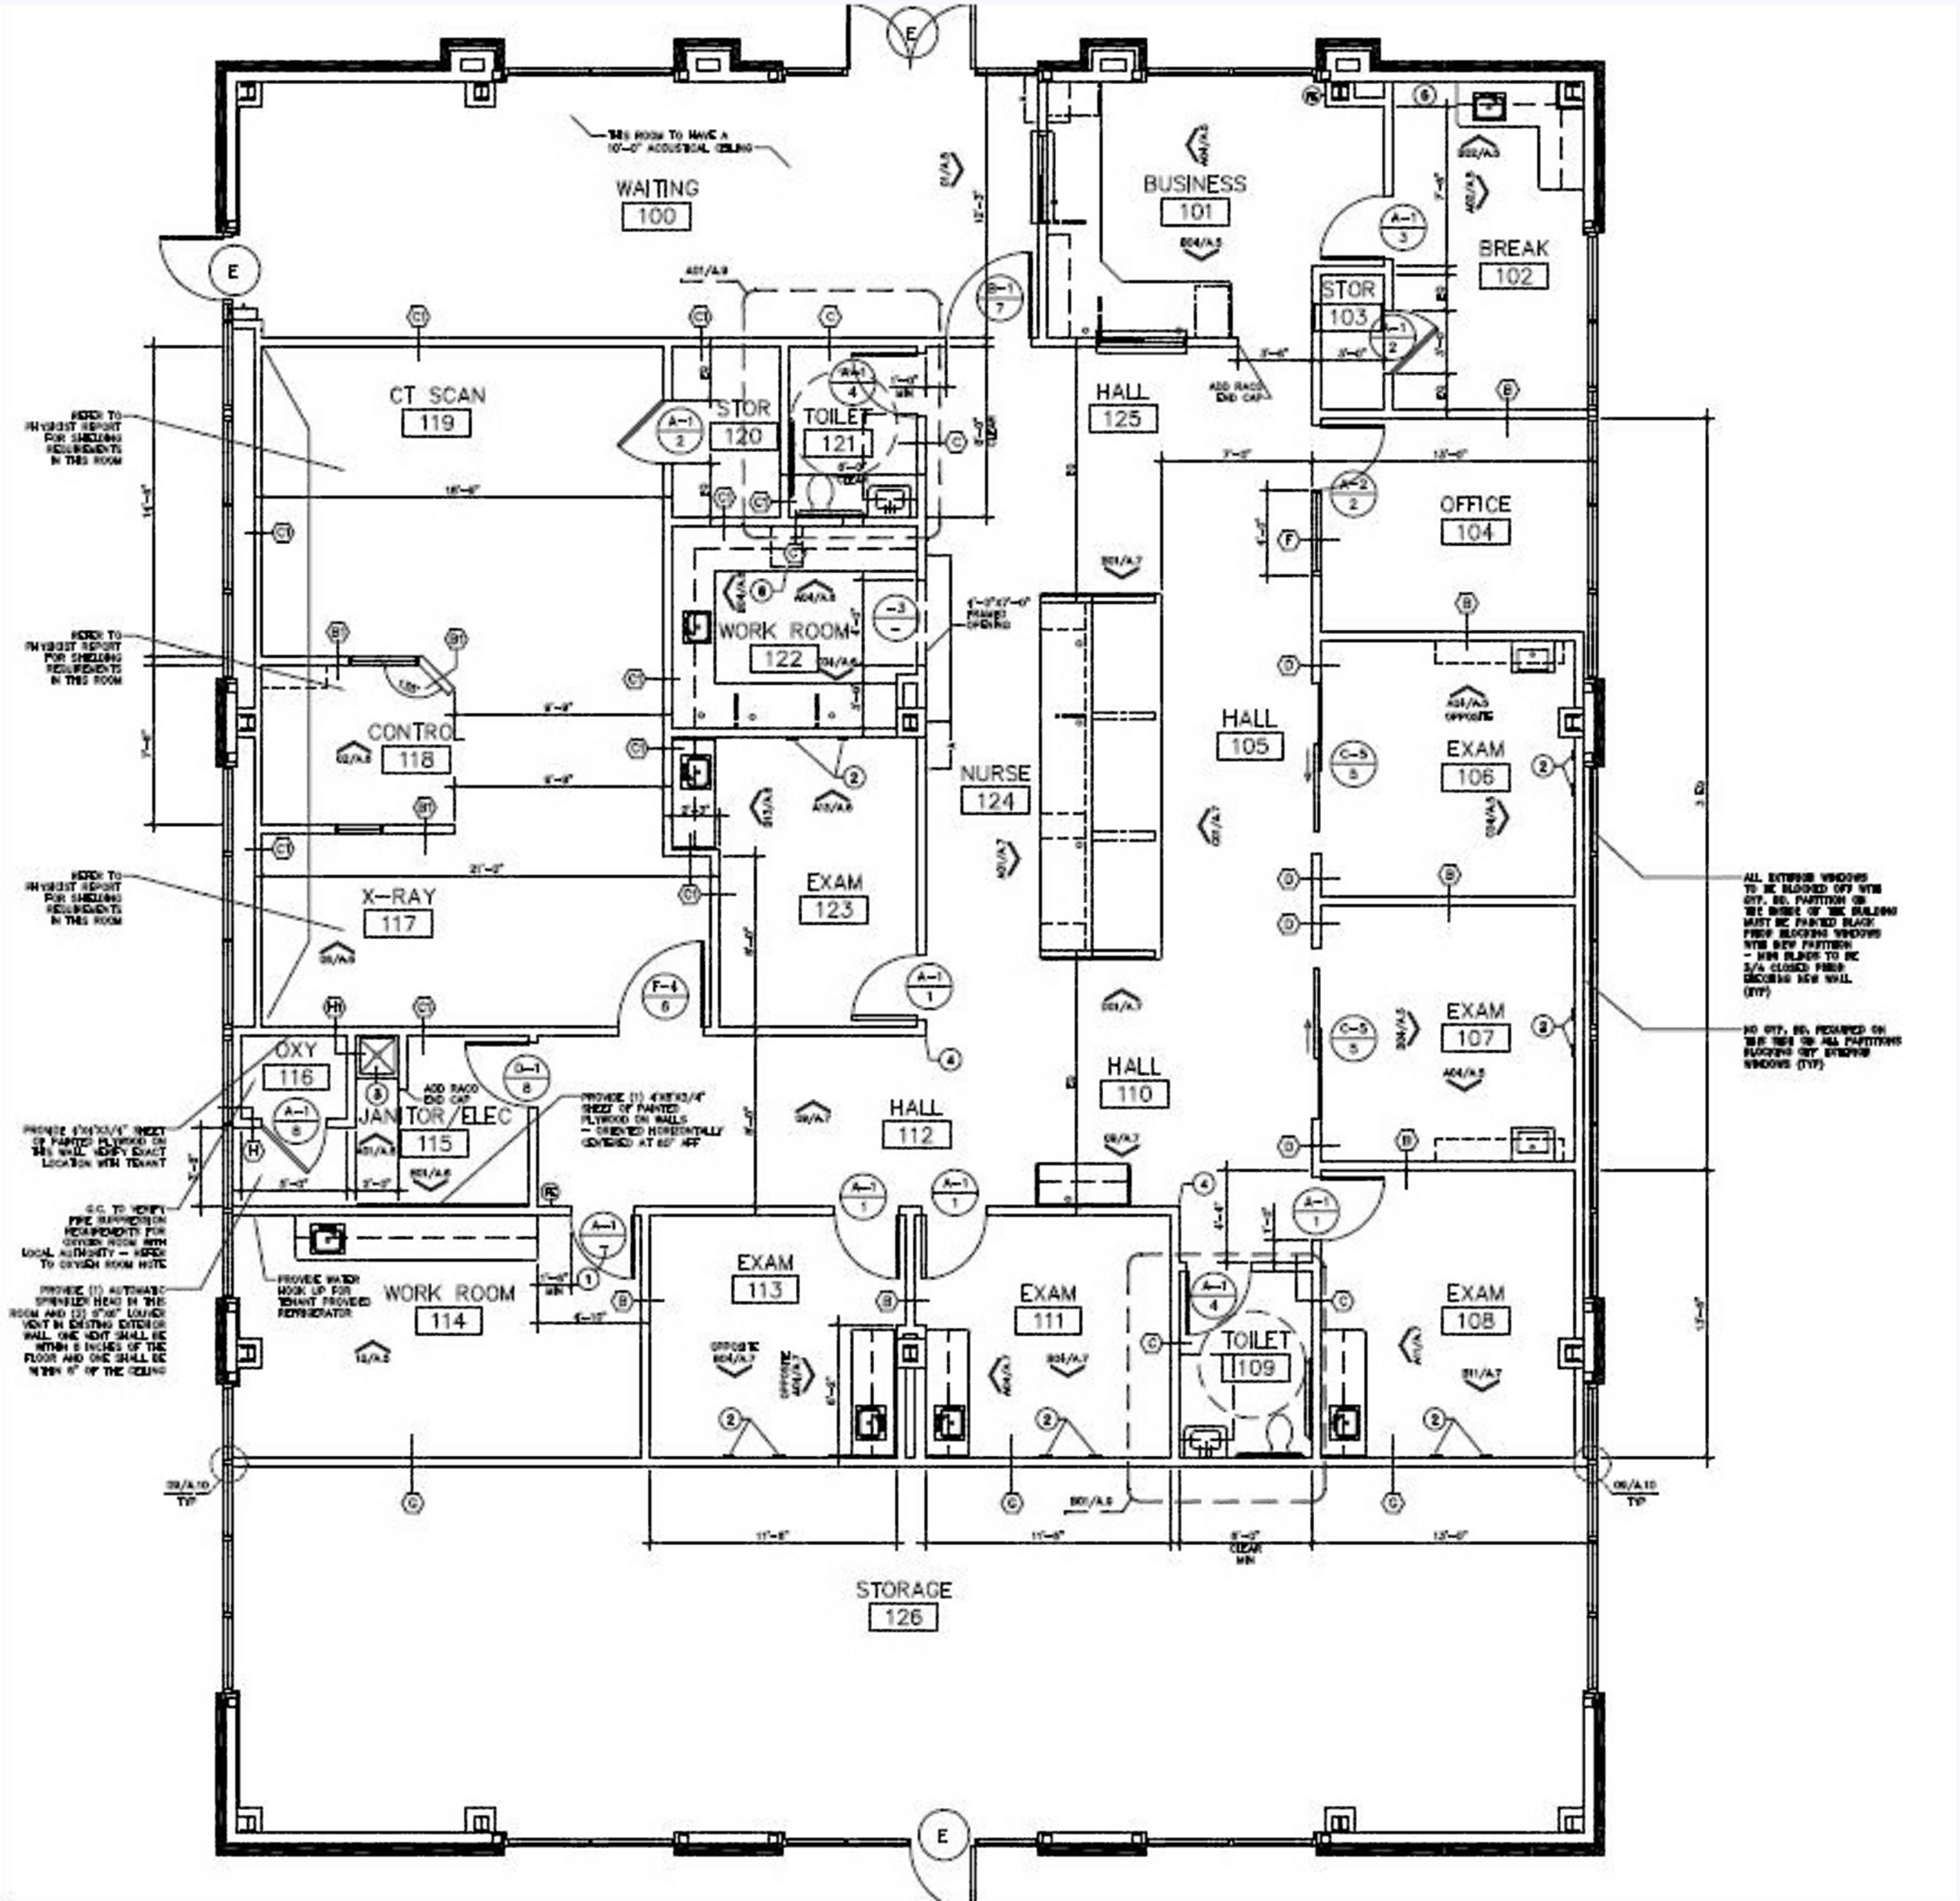 Freestanding Medical Office Building - Fort Worth: site plan